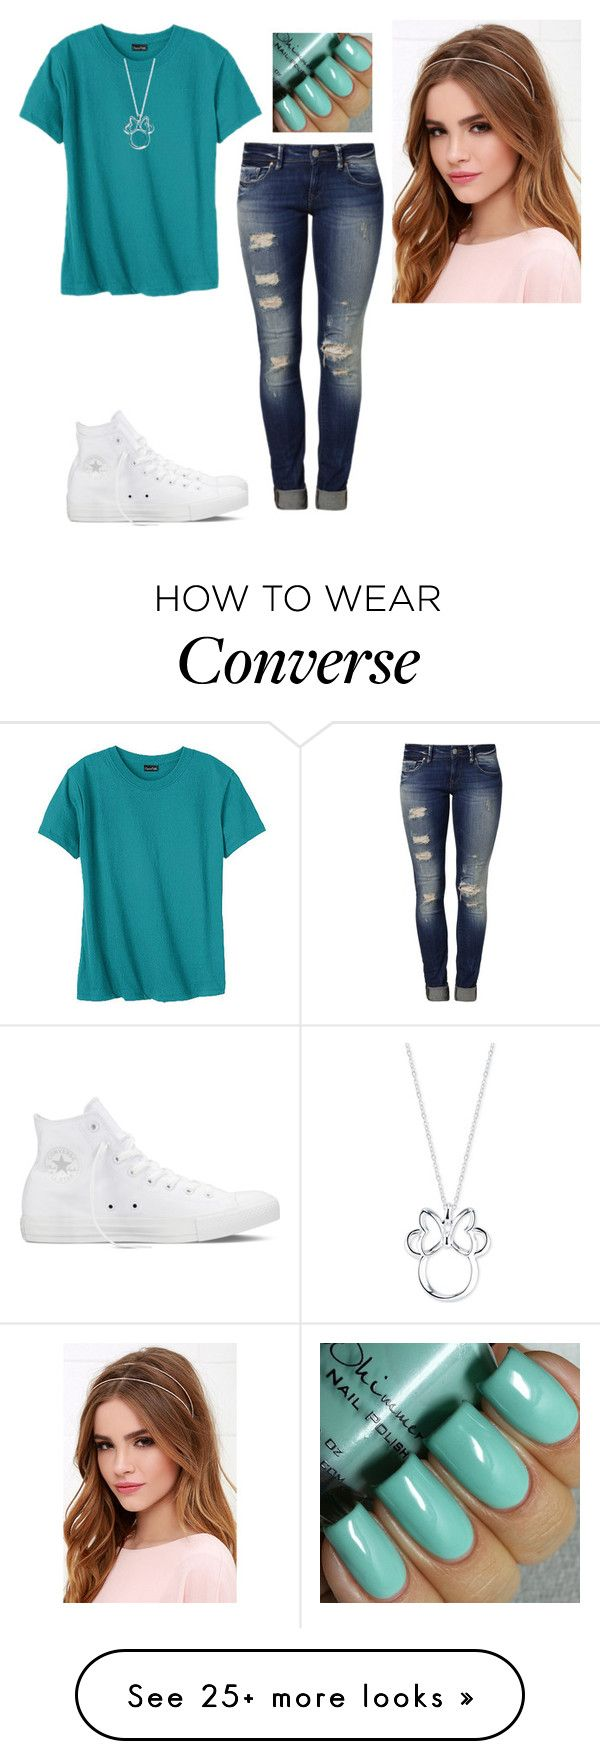 """""""Untitled #1321"""" by hannahmcpherson12 on Polyvore featuring Hanes, Mavi, Converse, Lulu*s, Disney, women's clothing, women, female, woman and misses"""